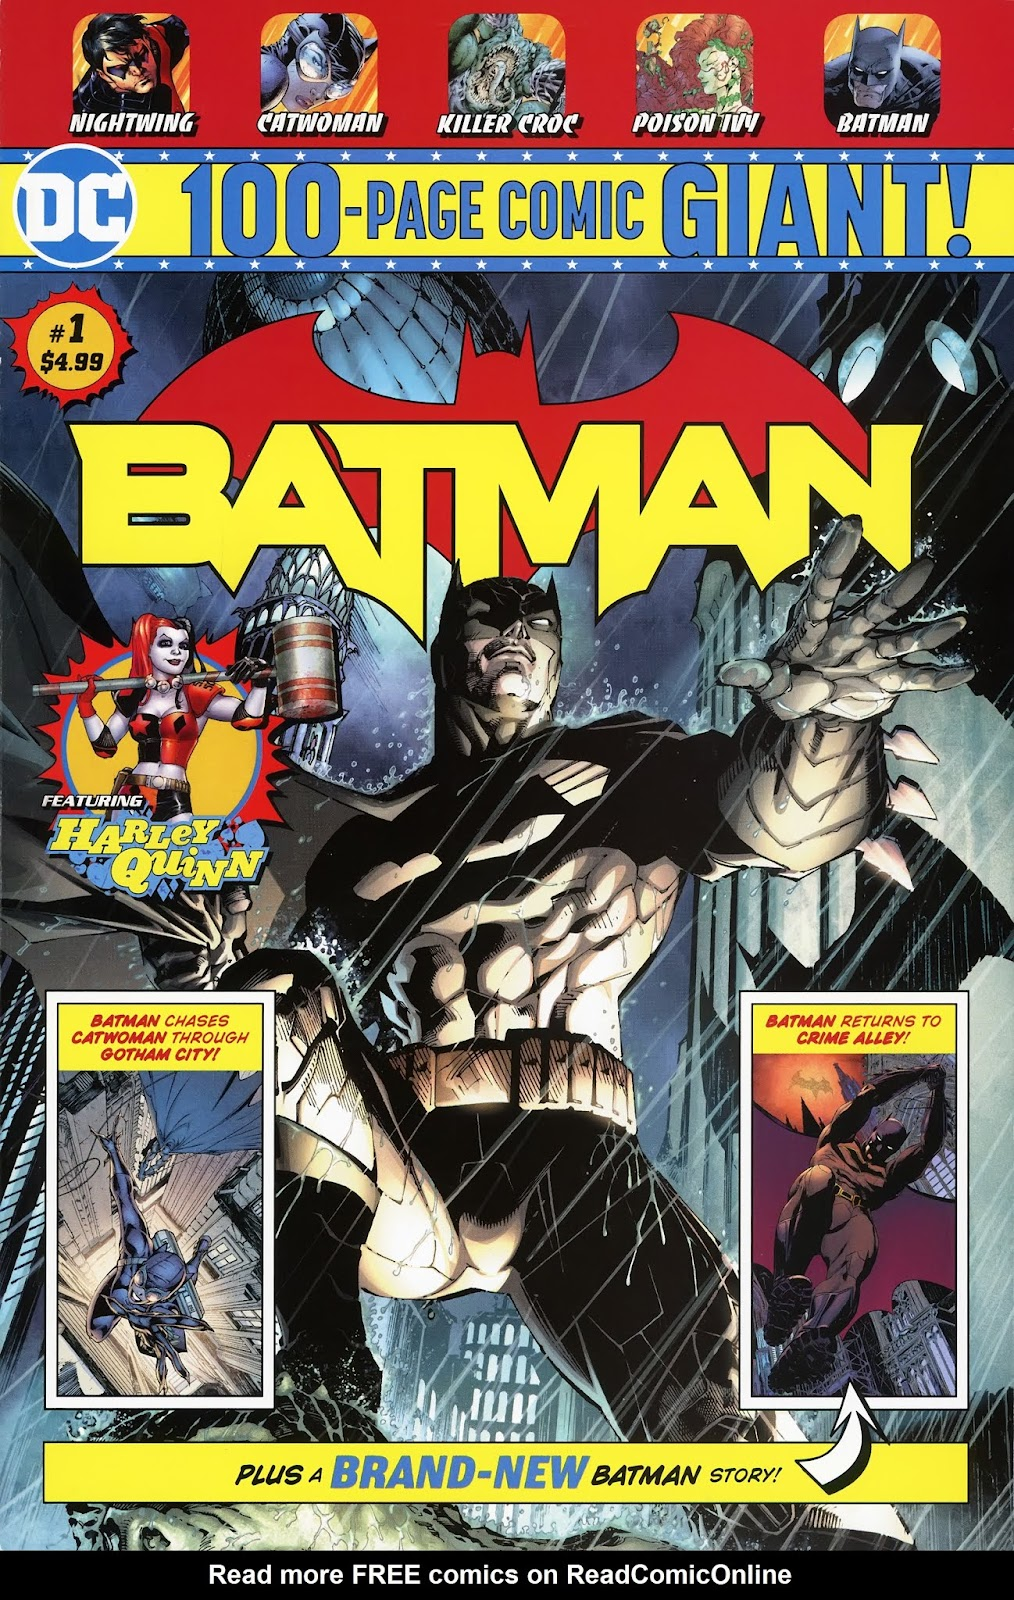 batman giant issue 1 read batman giant issue 1 comic online